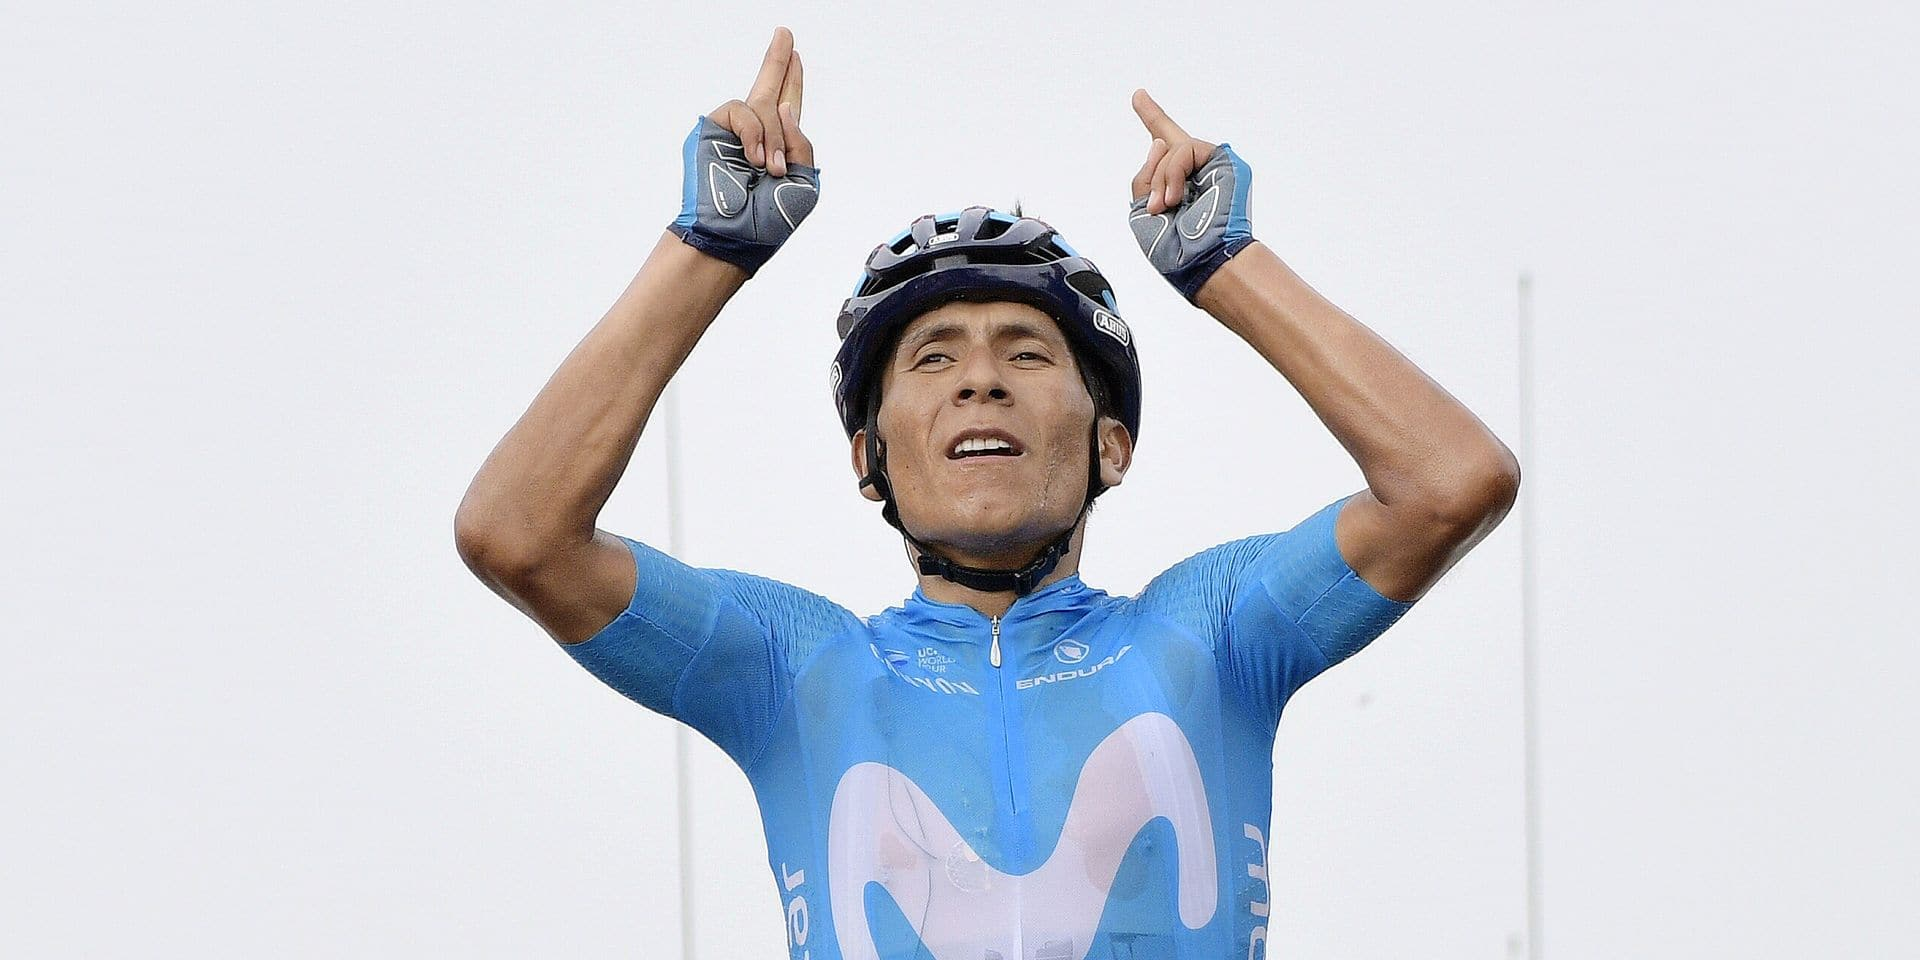 Colombian Nairo Quintana of Movistar Team celebrates as he crosses the finish line to win the 17th stage of the 105th edition of the Tour de France cycling race, from Bagneres-de-Luchon to Saint-Lary-Soulan (65 km), France, %datetext. This year's Tour de France takes place from July 7th to July 29th. BELGA PHOTO YORICK JANSENS